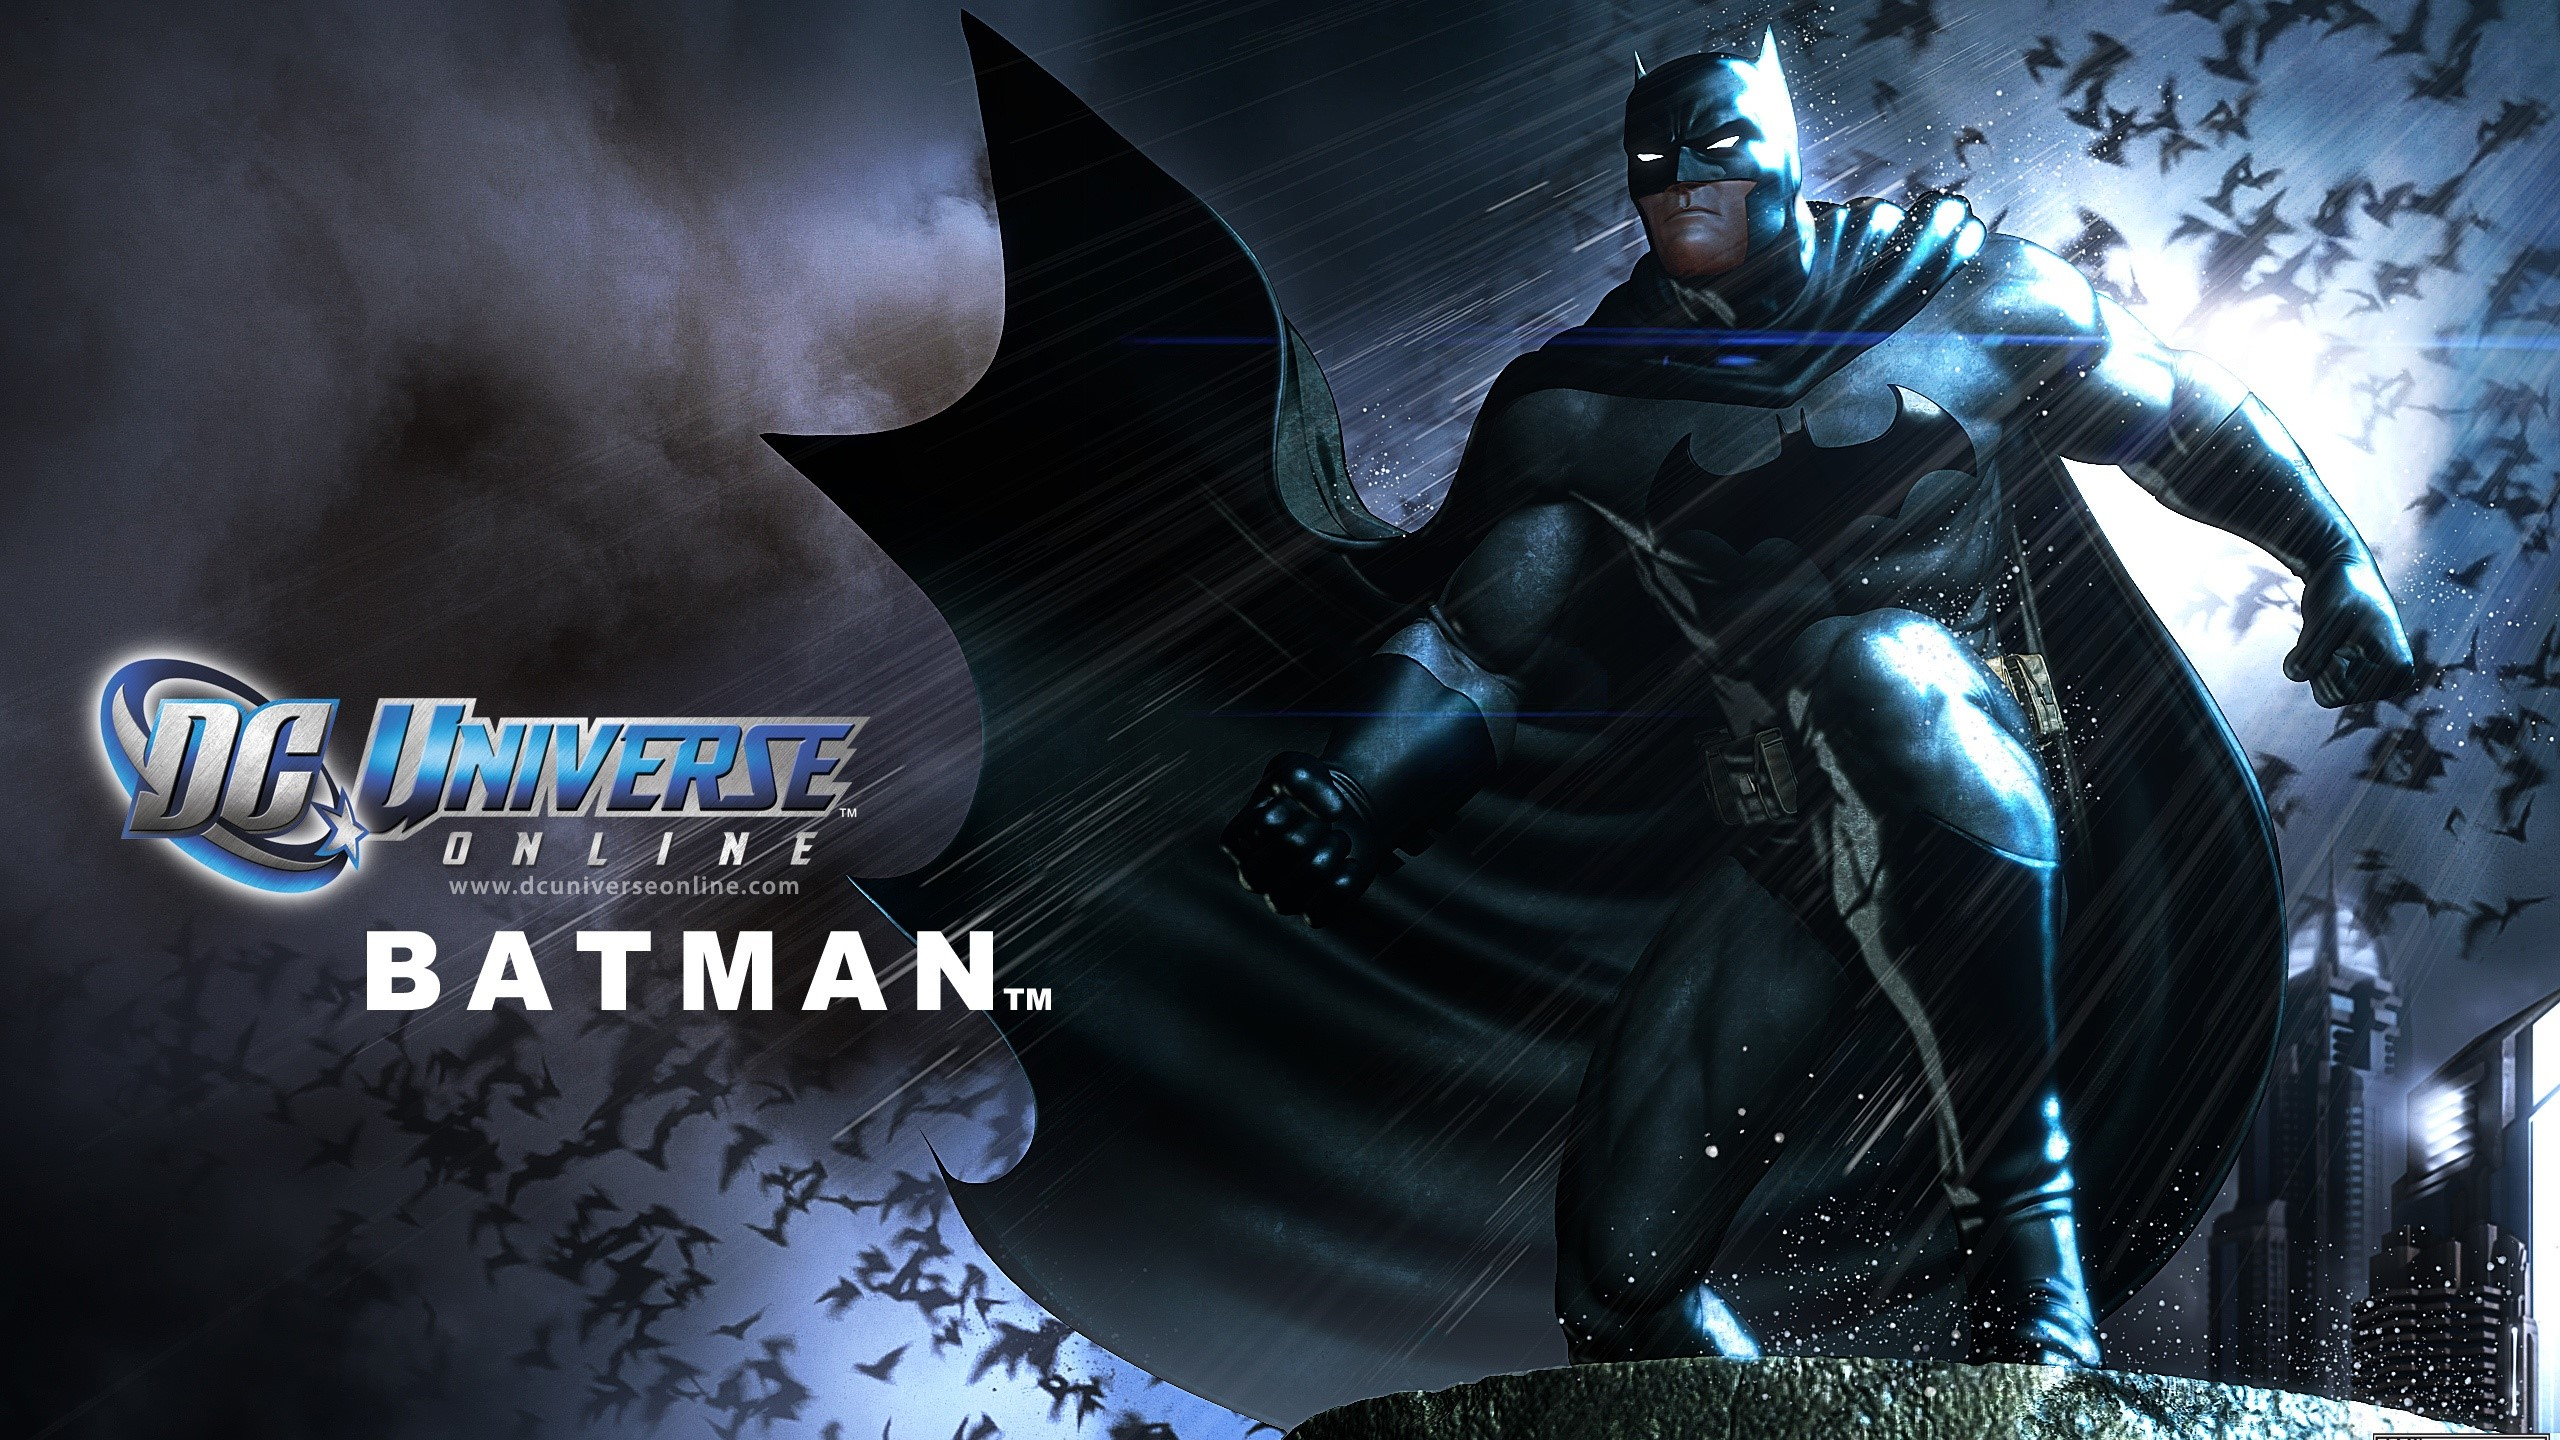 Wallpaper Batman in DC comics